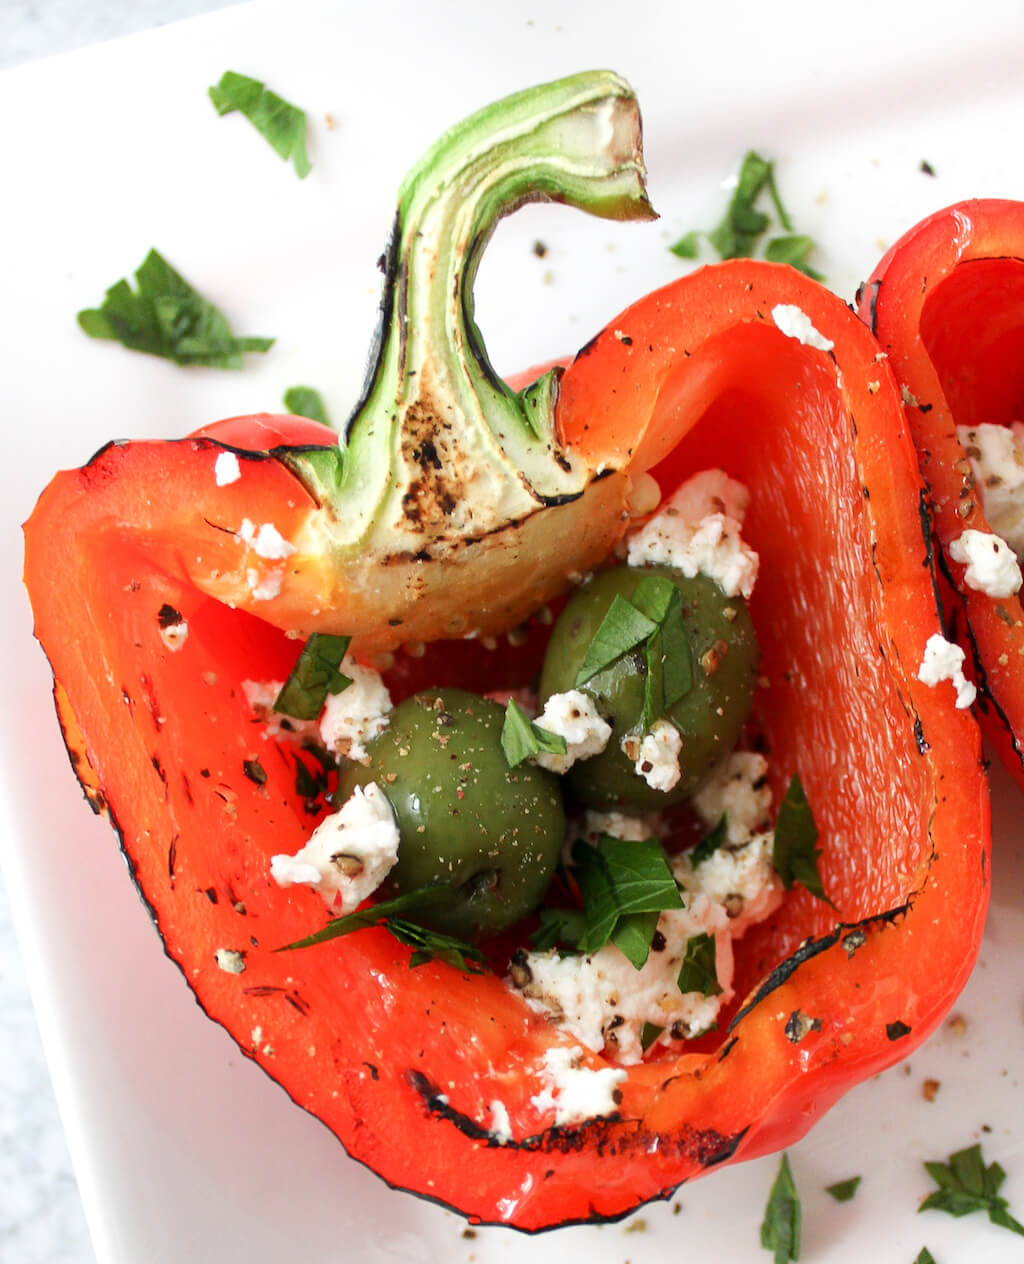 Grilled Red Bell Peppers with Olives and Feta